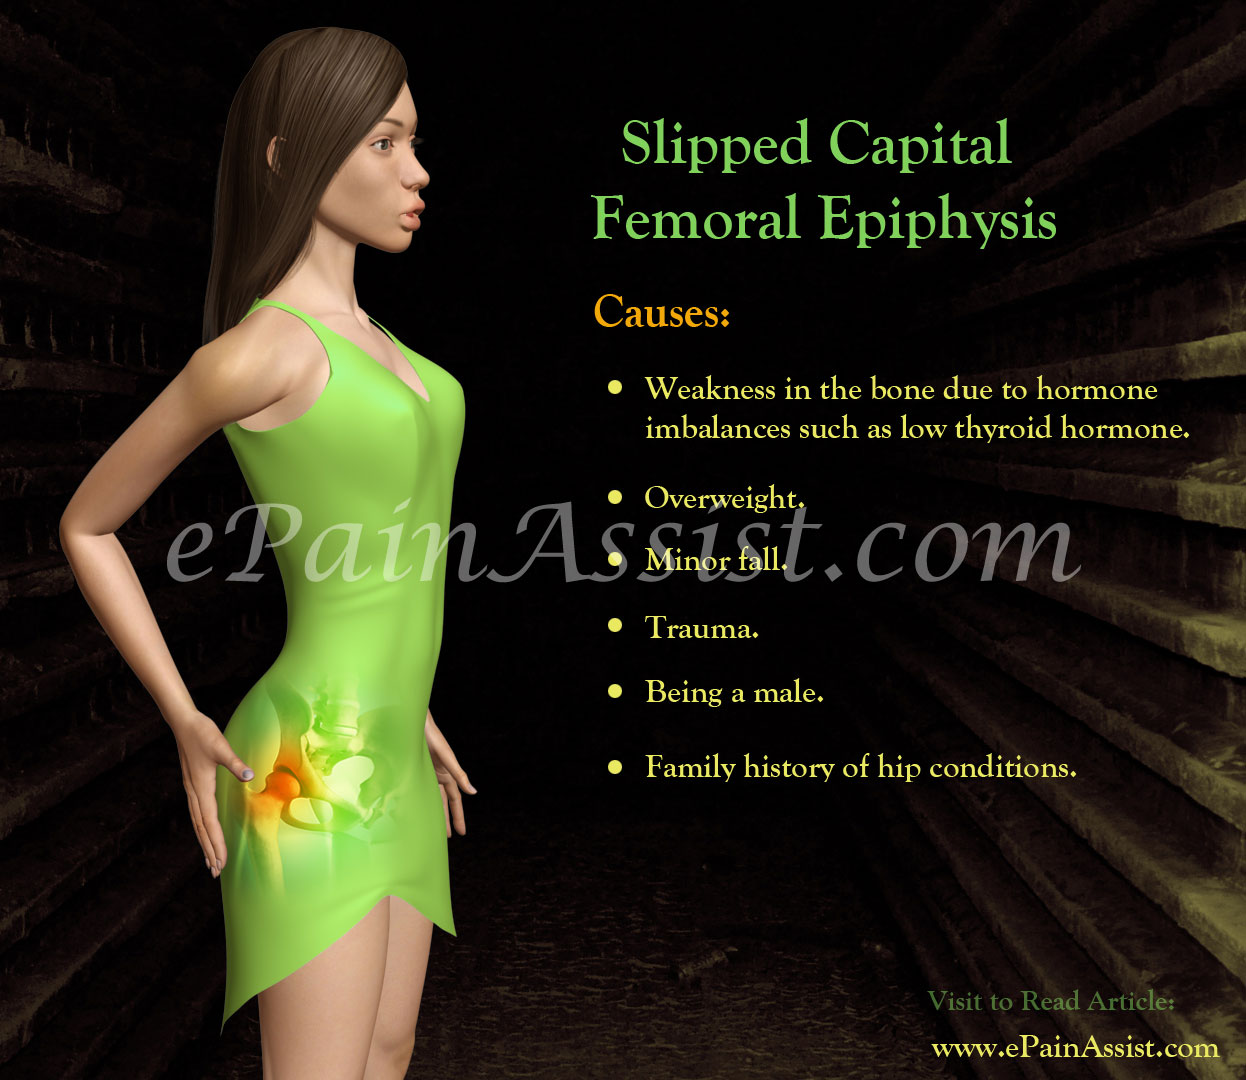 Causes and Risk Factors of Slipped Capital Femoral Epiphysis (SCFE)